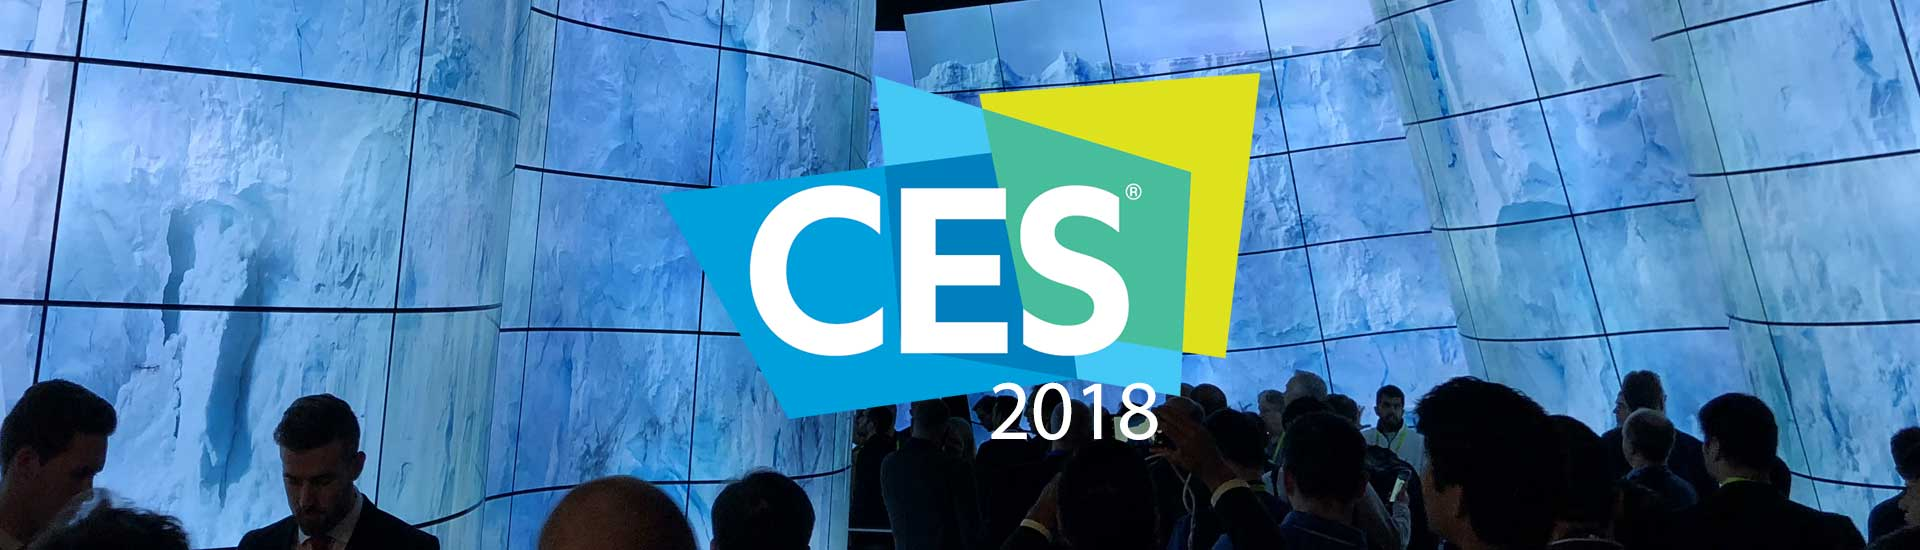 CES 2018 Highlights | World Wide Stereo